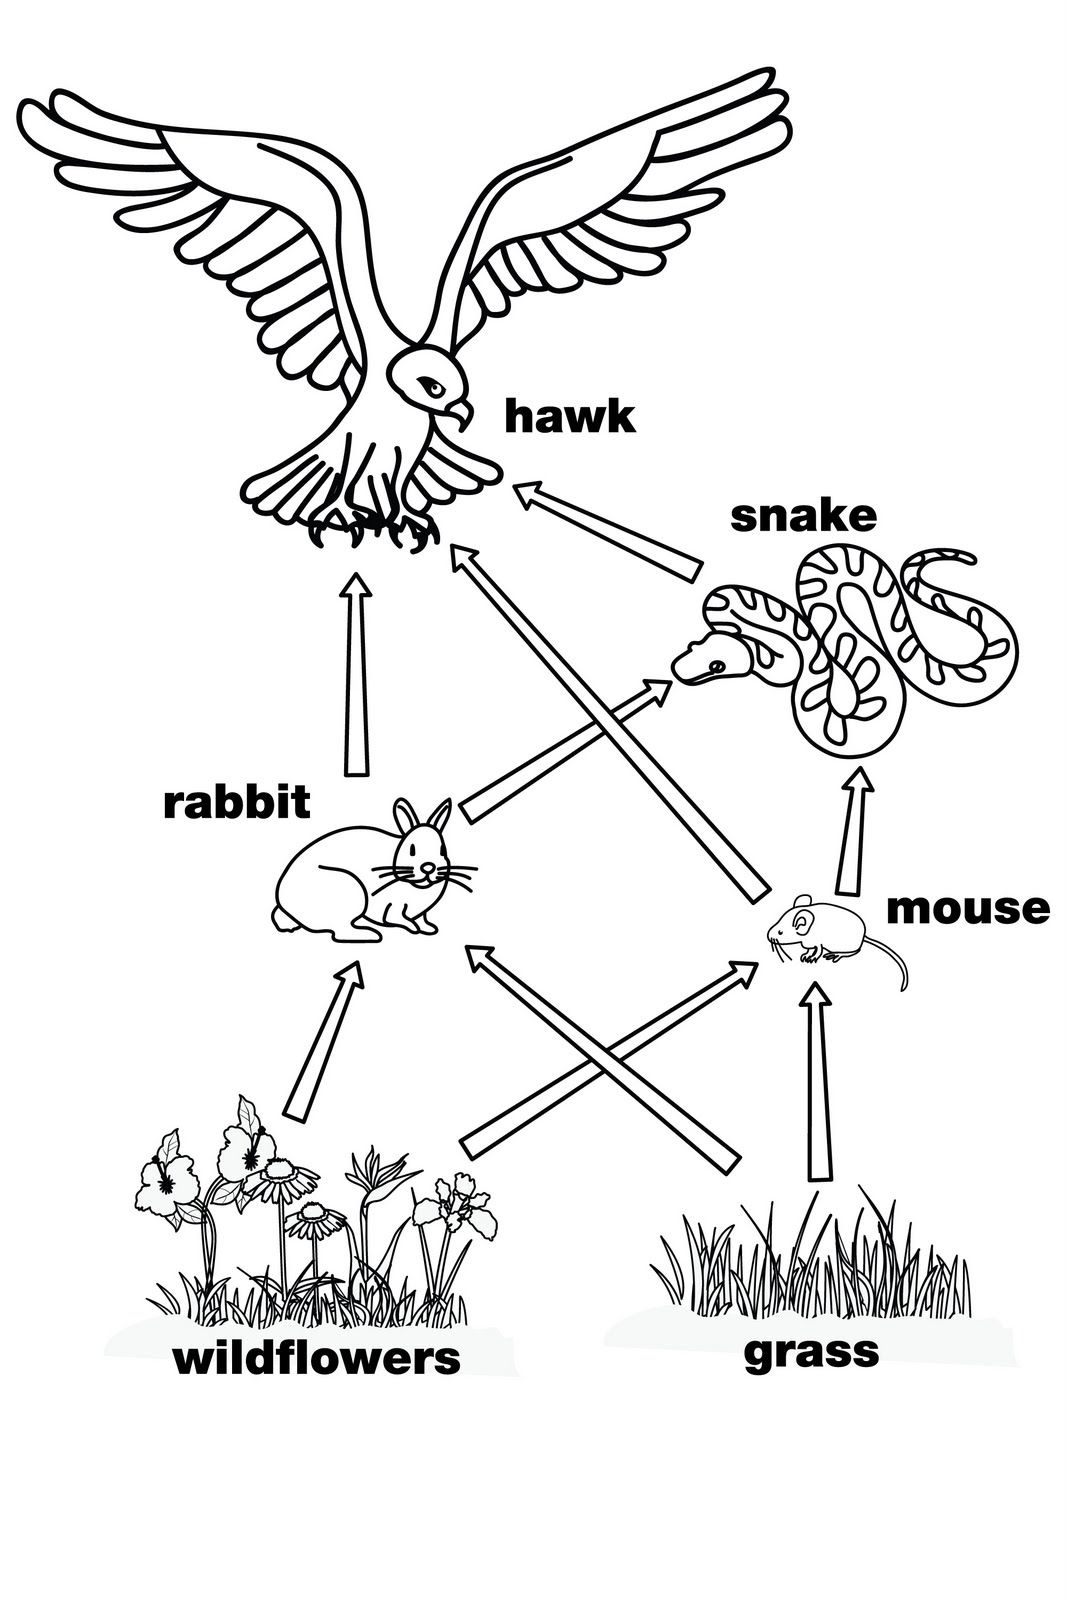 Other Graphical Works Food web, Food chain activities